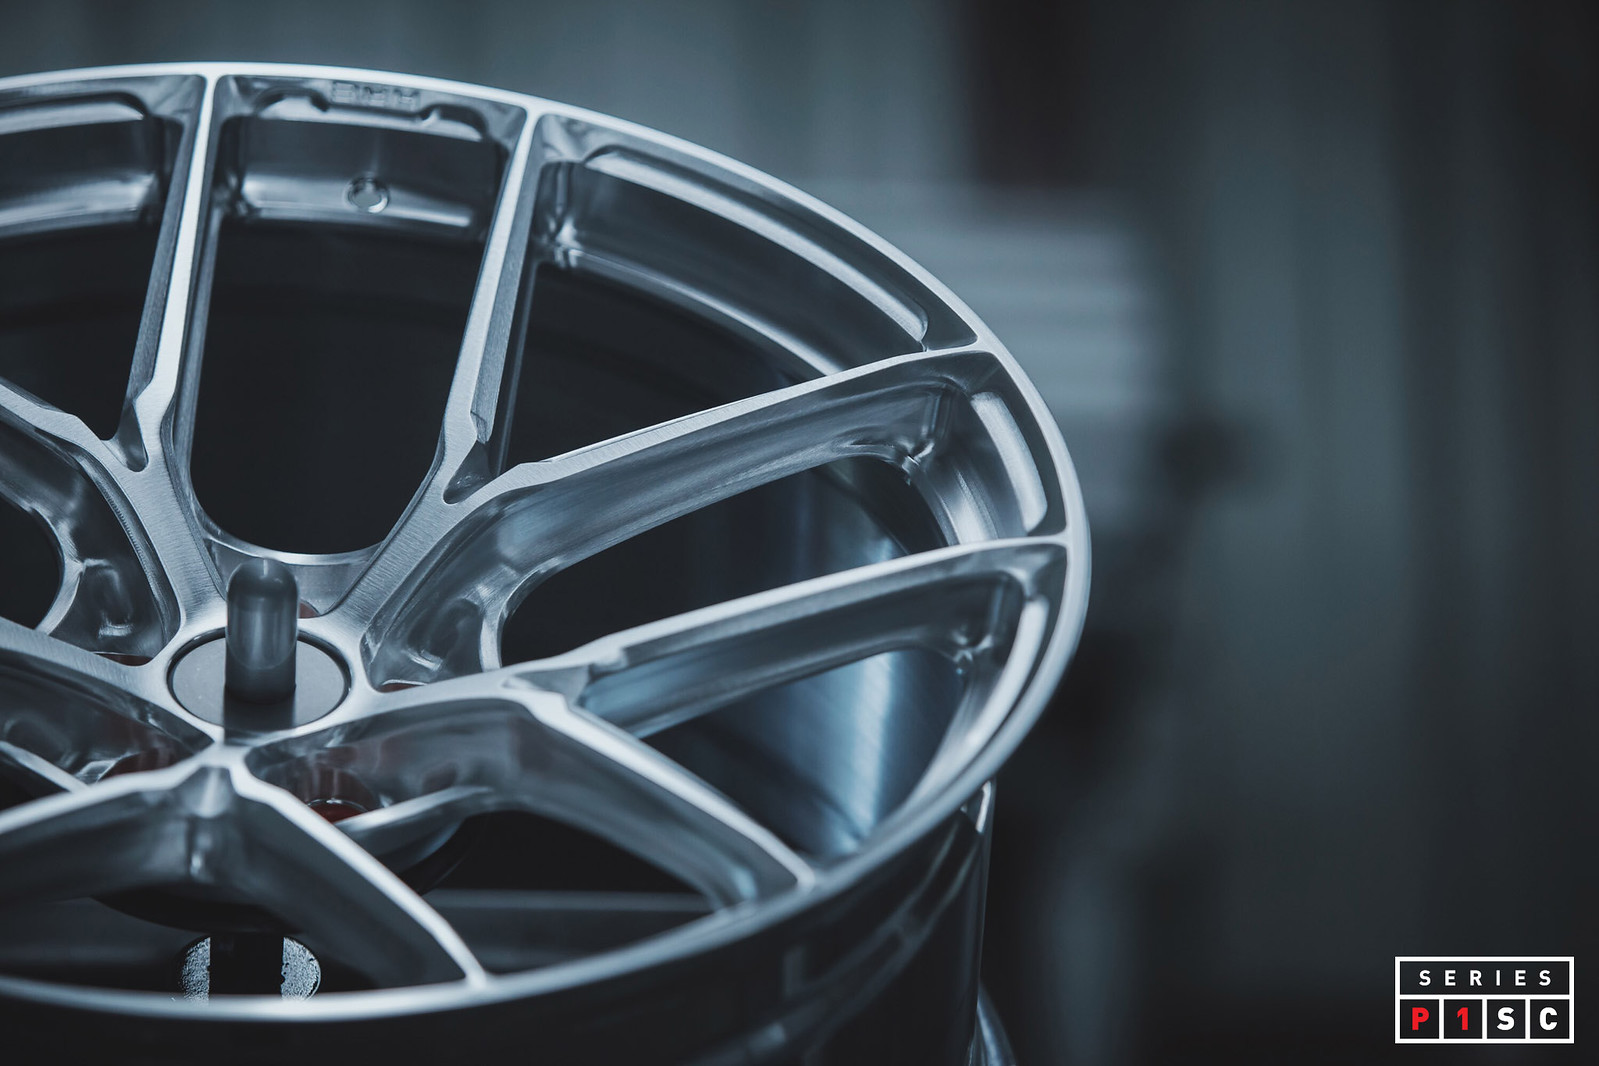 HRE Performance Wheels   Introducing the P1SC Series - New ...